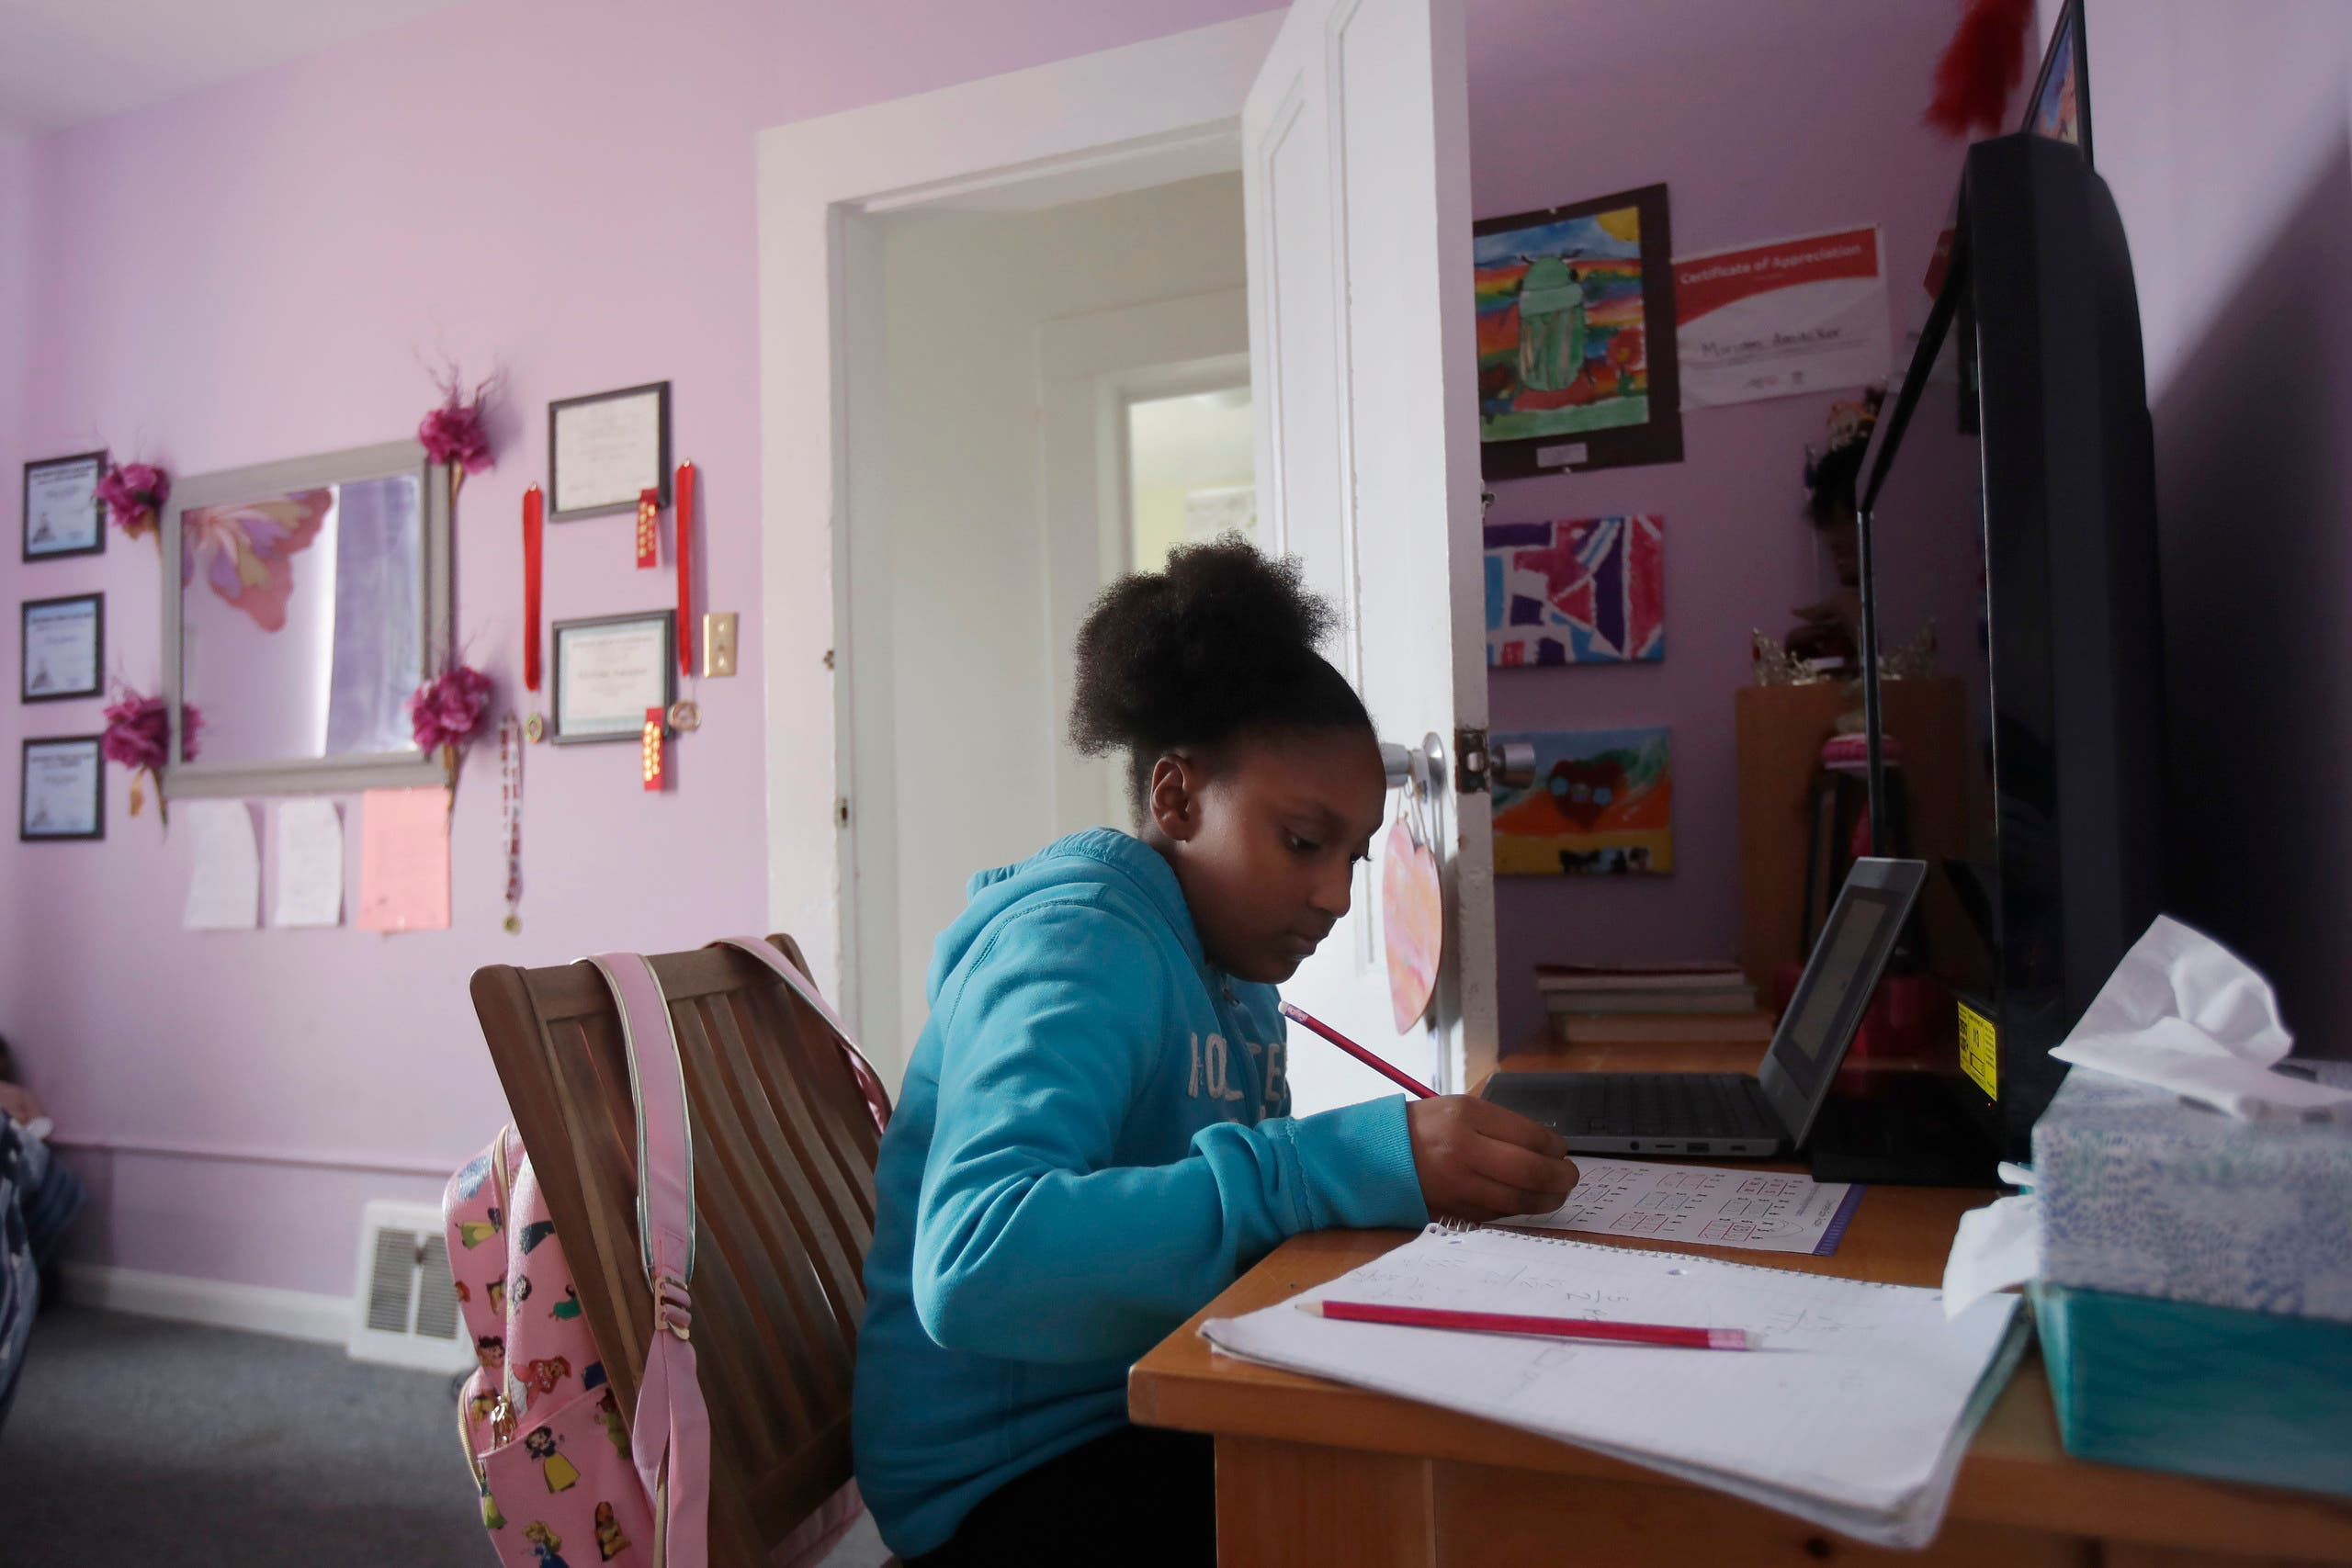 Elementary school fourth-grader Miriam Amacker does school work in her room at her family's home in San Francisco on April 9, 2020. (AP)